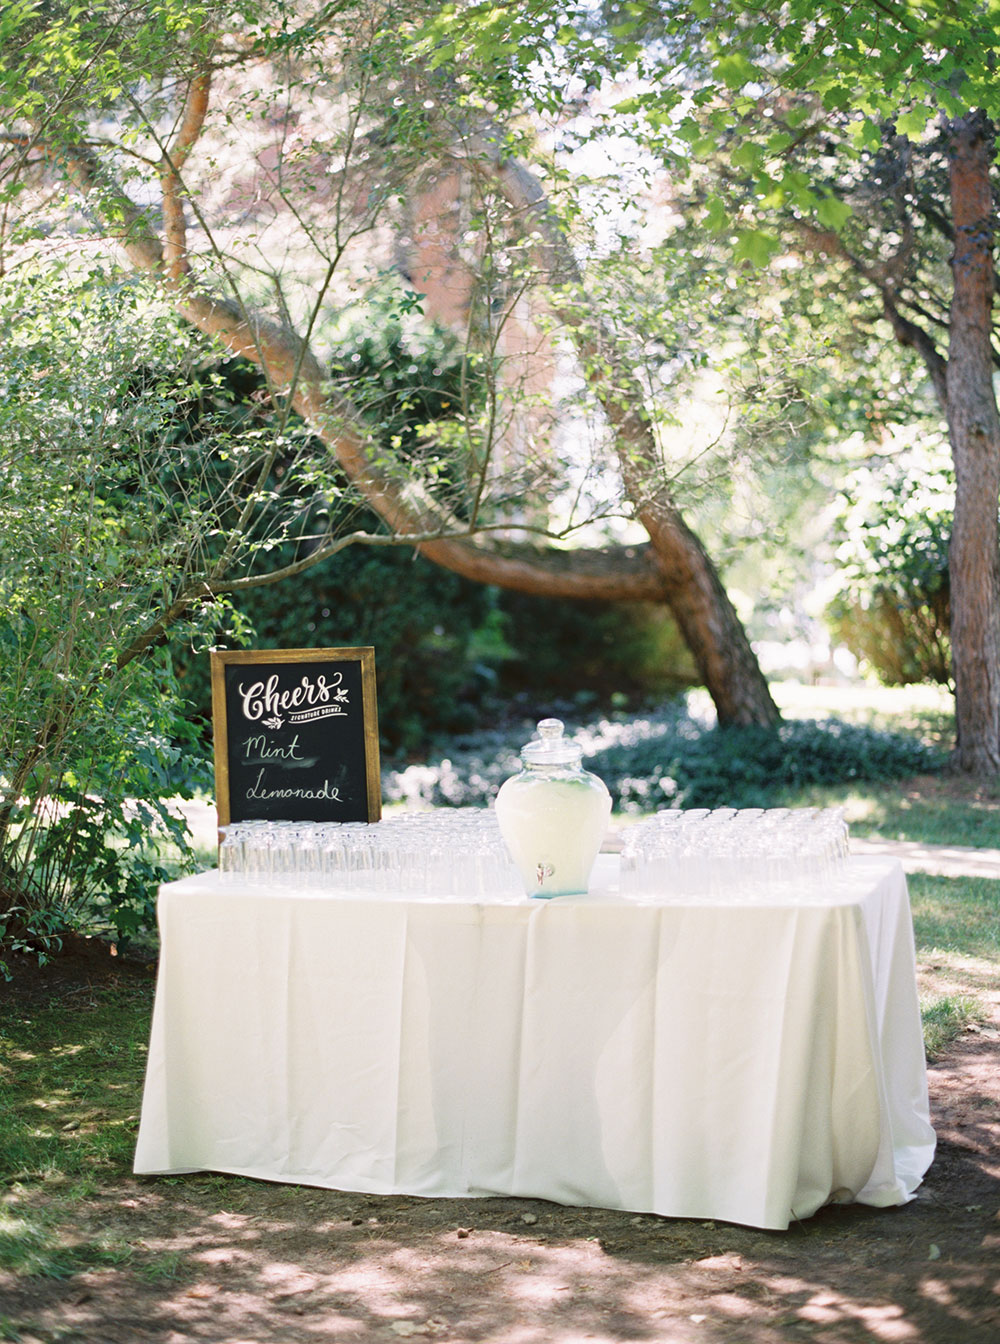 kurtz-orchards-wedding-gracewood-estate-niagara-on-the-lake-photo-by-katie-nicolle-photography-0014.JPG